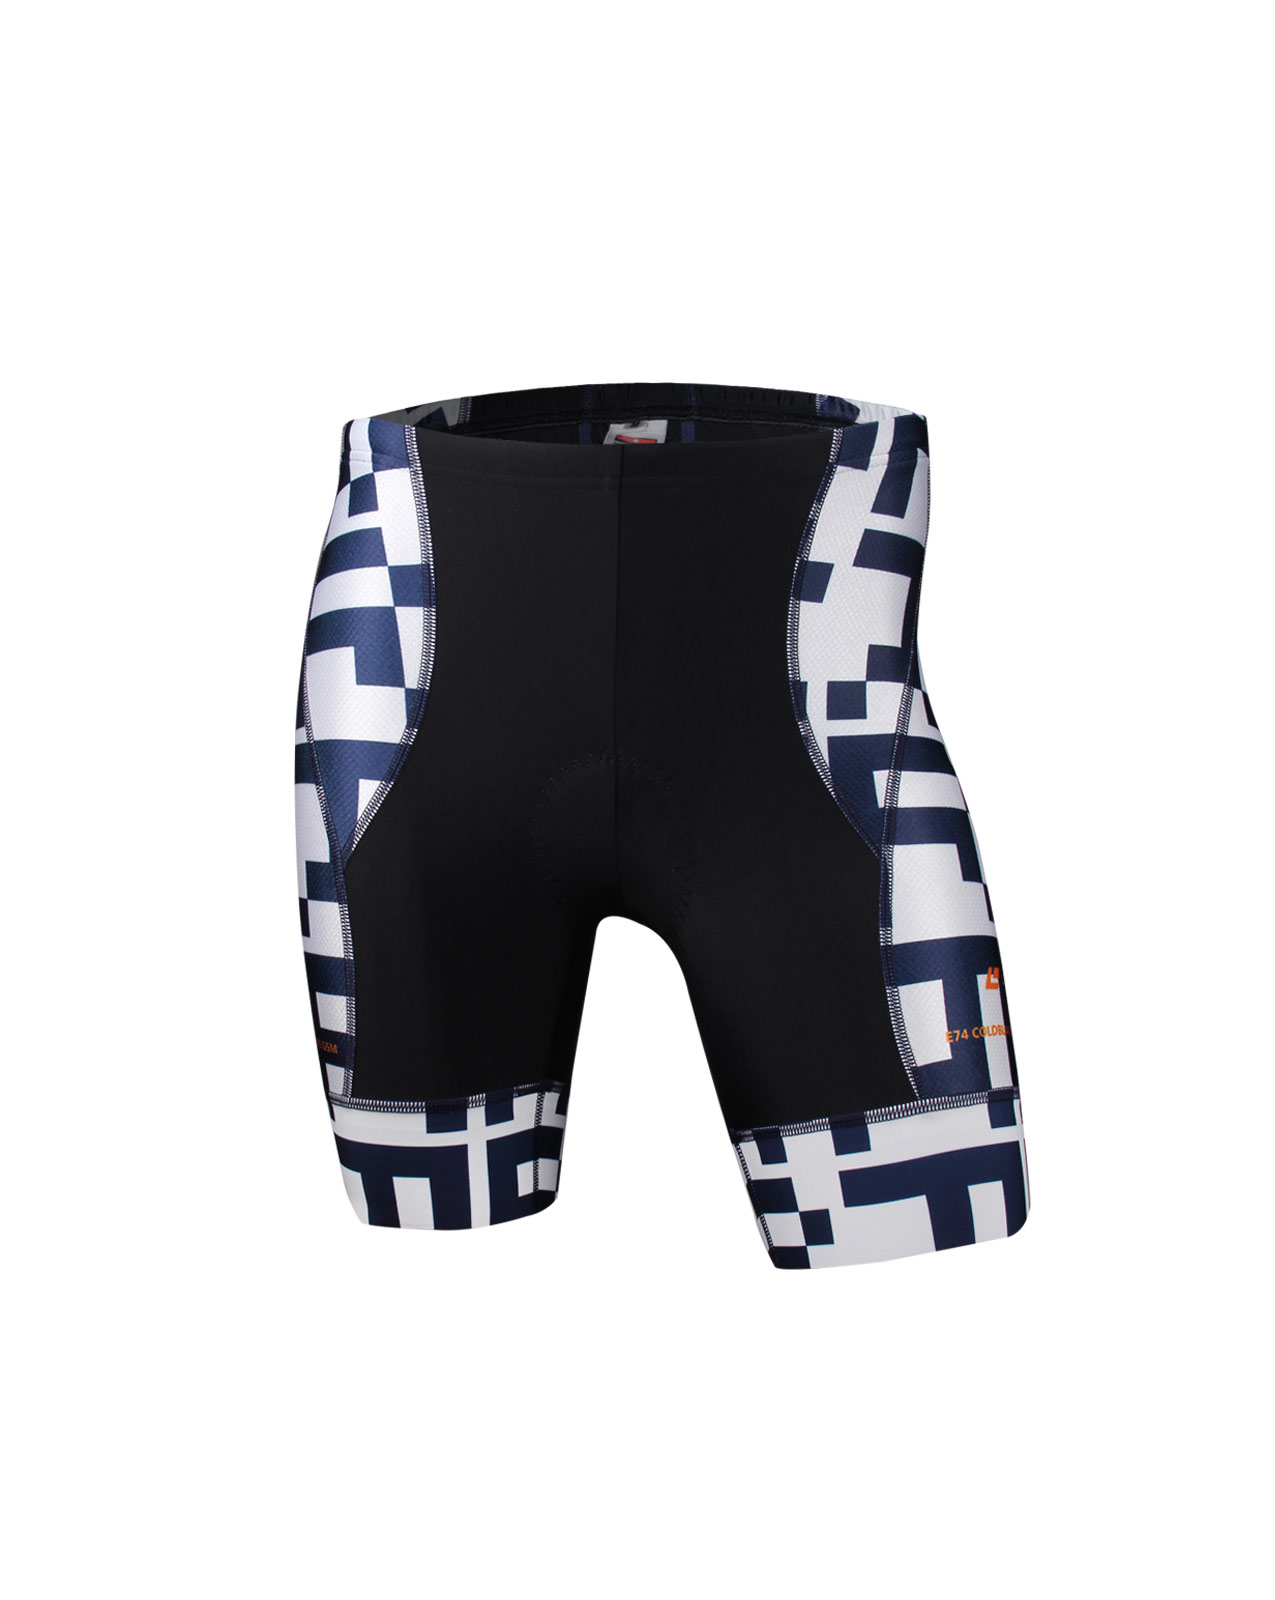 Swiss COLDBLACK AERO Tri Shorts